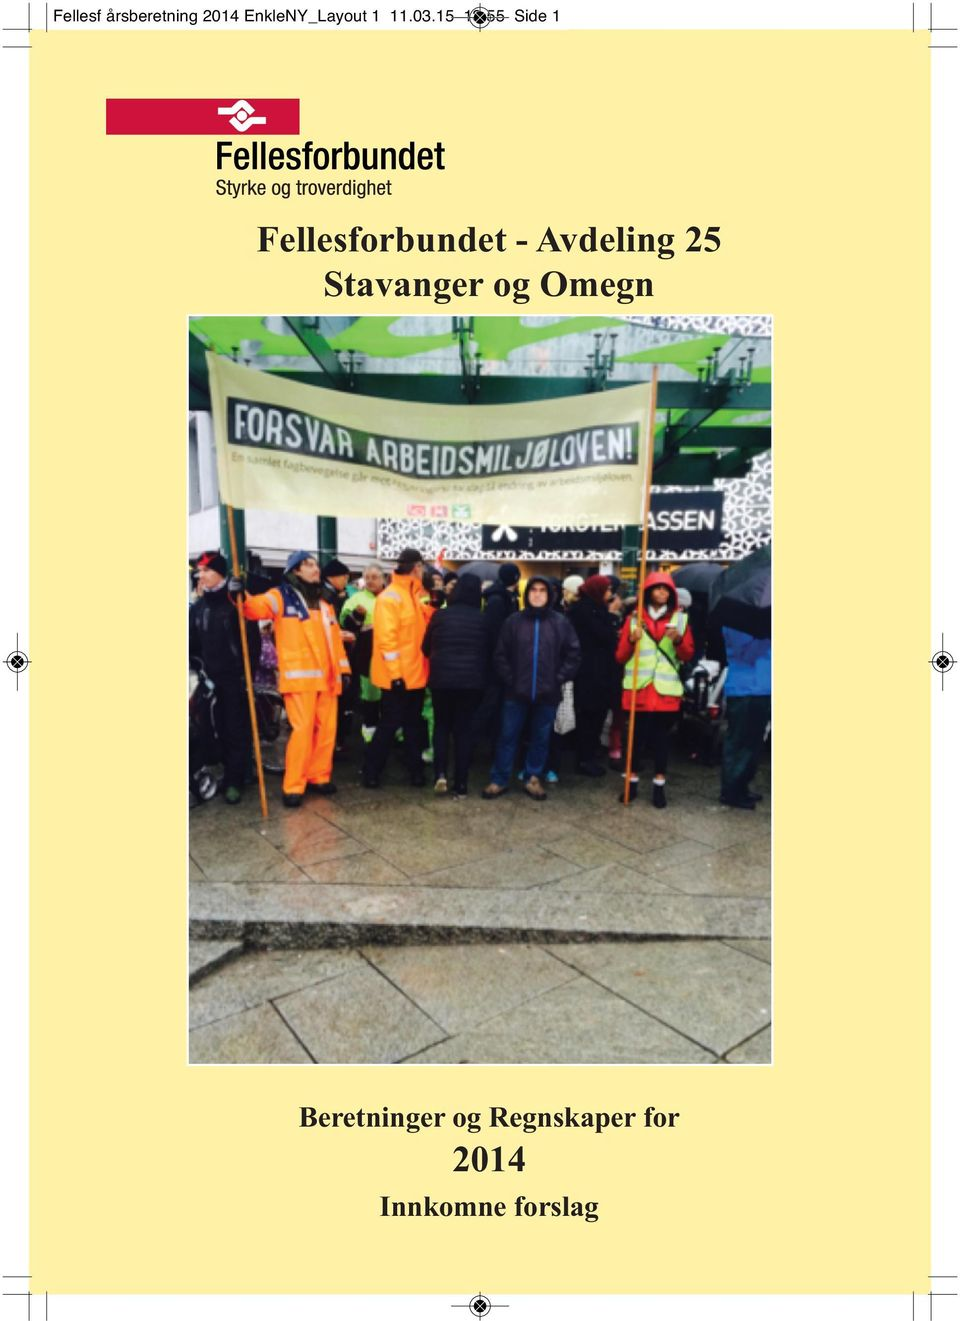 55 Side 1 Fellesforbundet - Avdeling 25